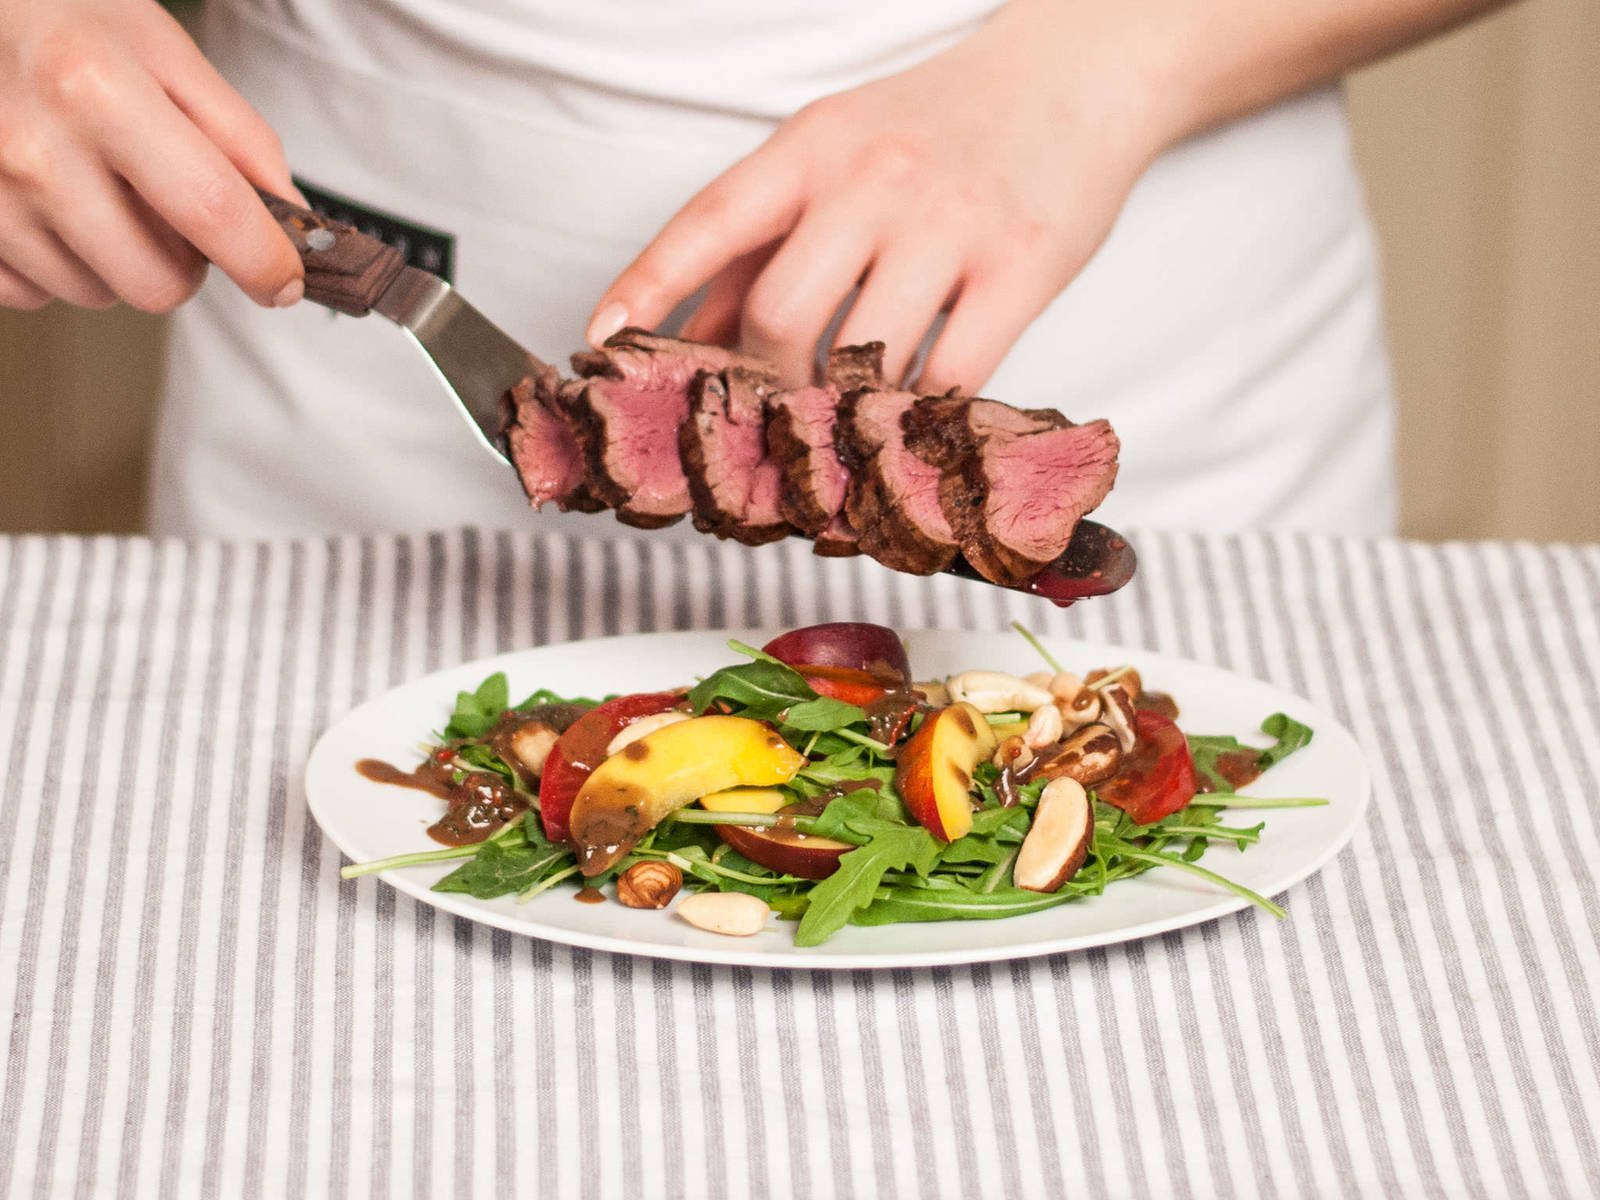 In a salad bowl, toss arugula, tomatoes, and nectarines with the dressing and place on serving plates. Slice up tenderloin and arrange on top of the salad. Sprinkle with toasted nuts and season again with salt and pepper before serving.